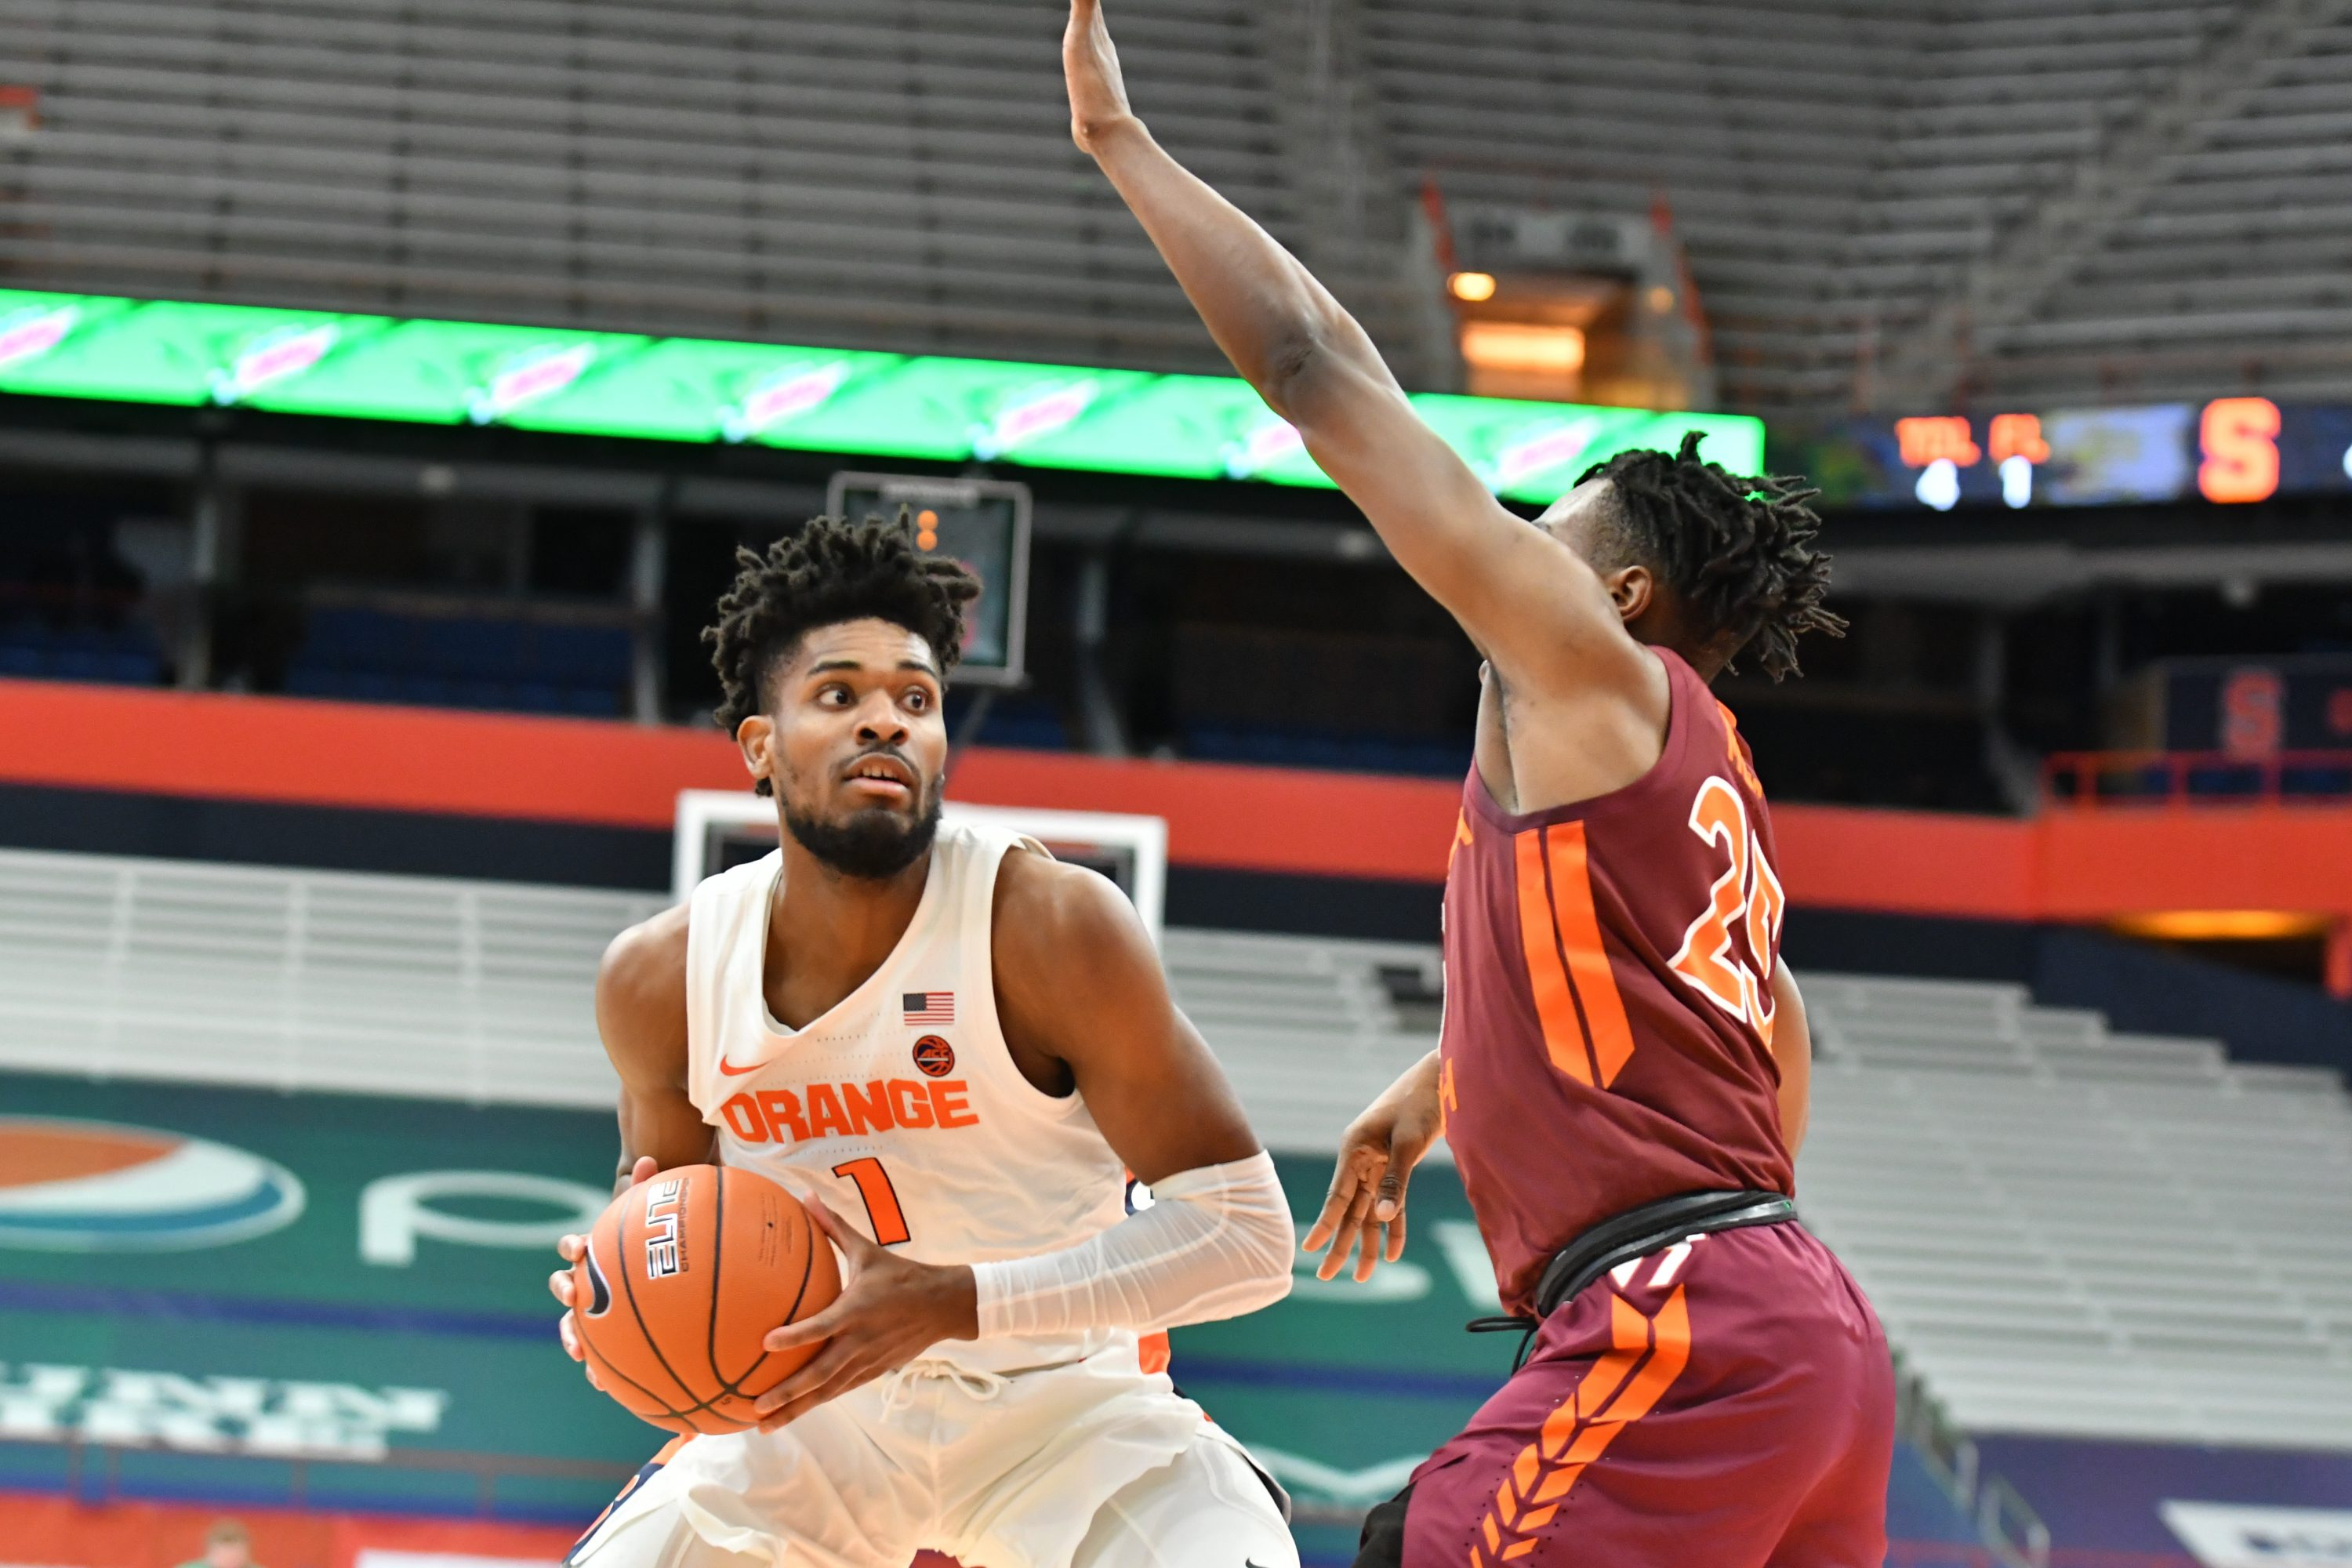 Jan 23, 2021; Syracuse, New York, USA; Syracuse Orange forward Quincy Guerrier (1) tries to move past Virginia Tech Hokies forward Justyn Mutts (25) in the first half at the Carrier Dome. Mandatory Credit: Mark Konezny-USA TODAY Sports